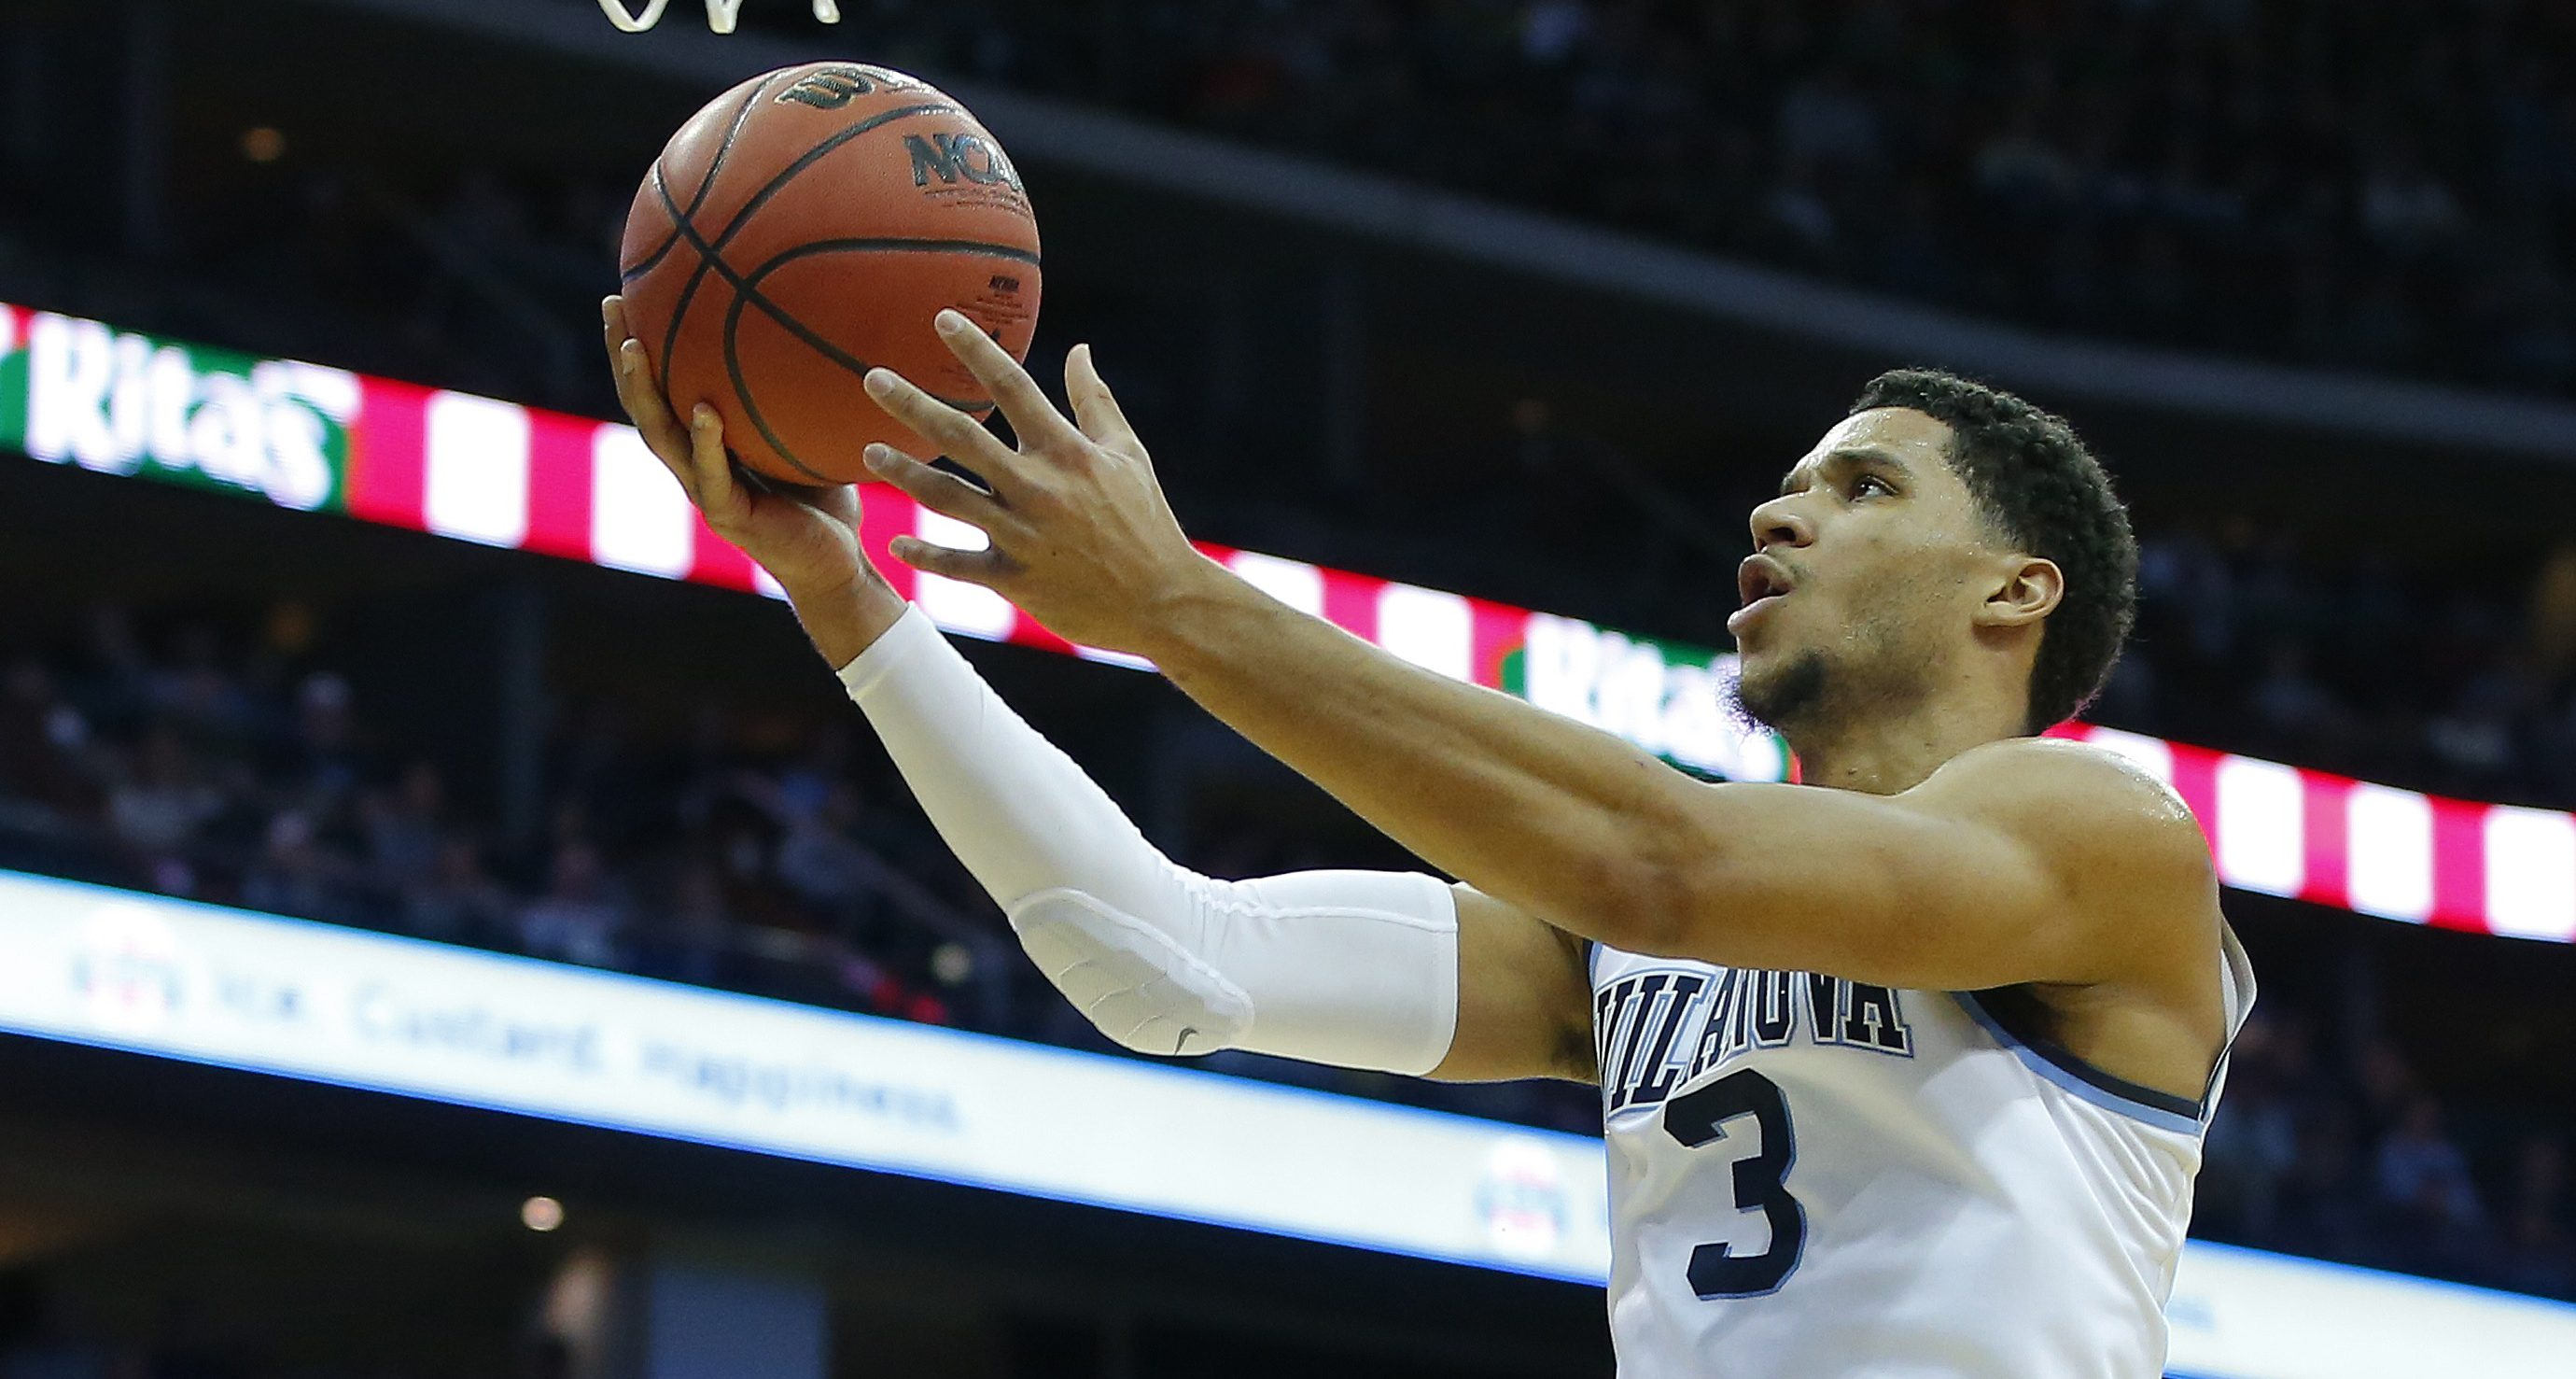 NEWARK, NJ - DECEMBER 10: Josh Hart #3 of the Villanova Wildcats takes a shot against the Notre Dame Fighting Irish during the first half of a college basketball game at Prudential Center on December 10, 2016 in Newark, New Jersey. Villanova defeated Notre Dame 74-66. (Photo by Rich Schultz/Getty Images)